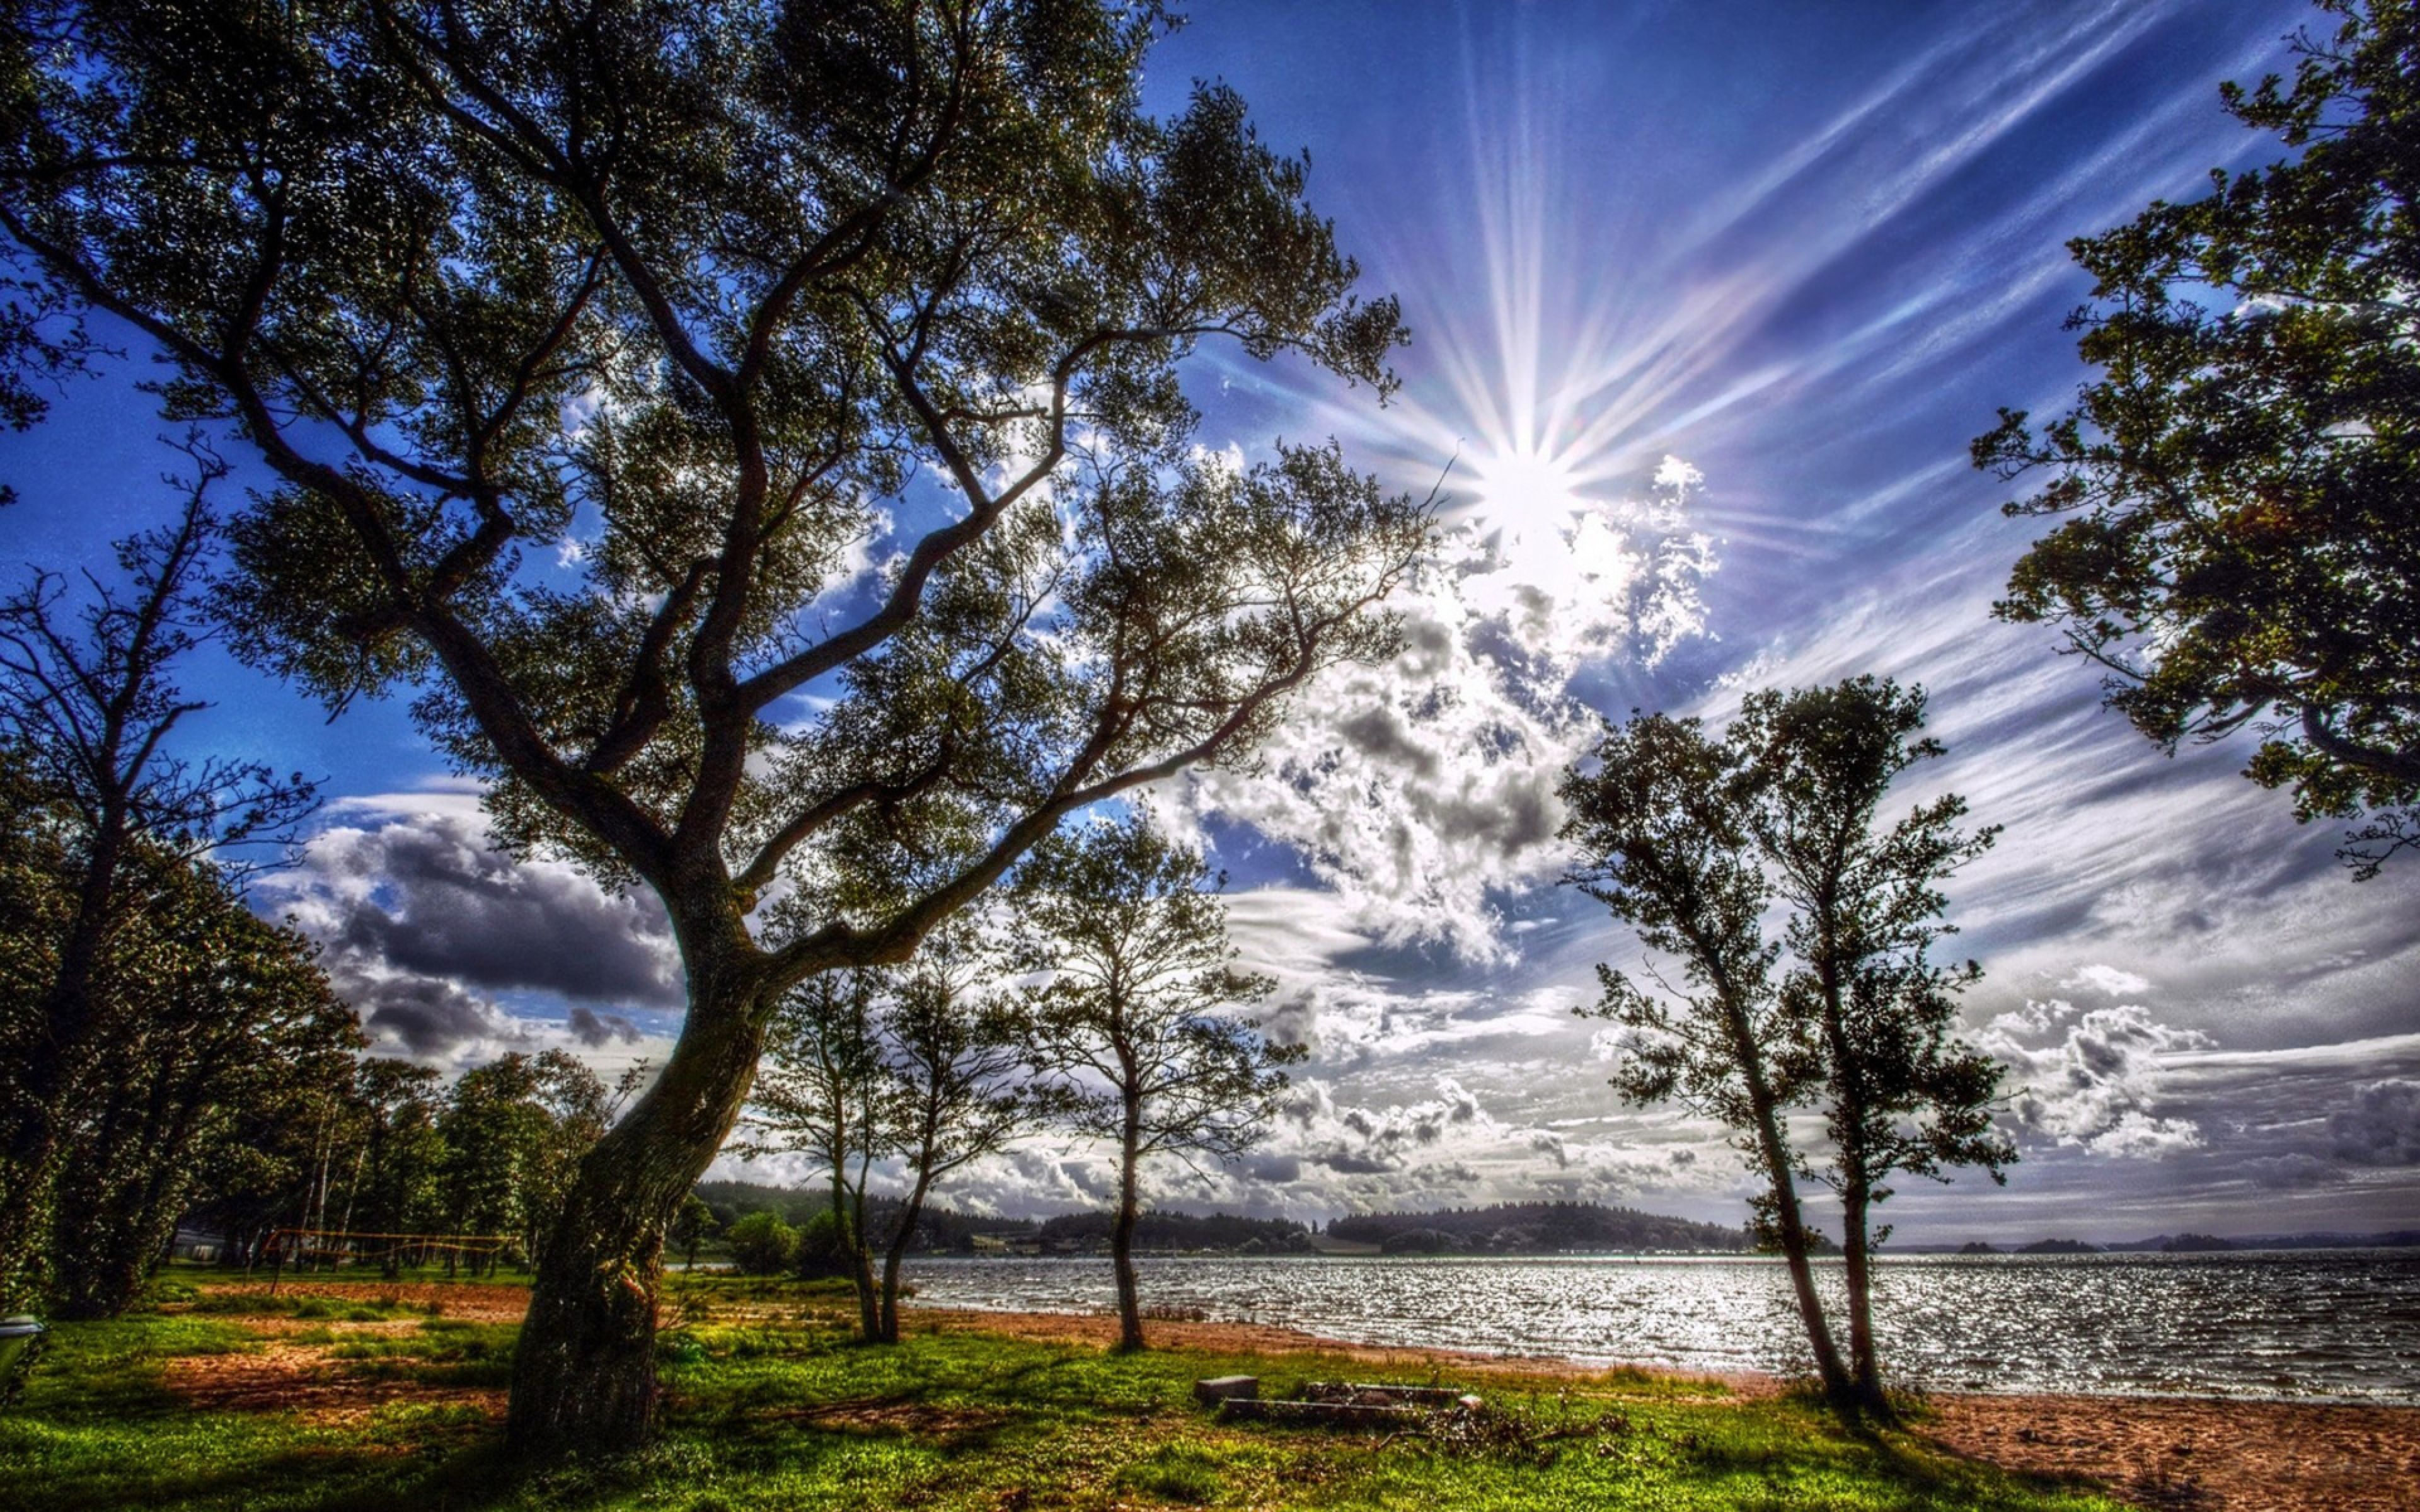 Spring Morning Clouds Nature Wallpaper Screen Savers Wallpapers